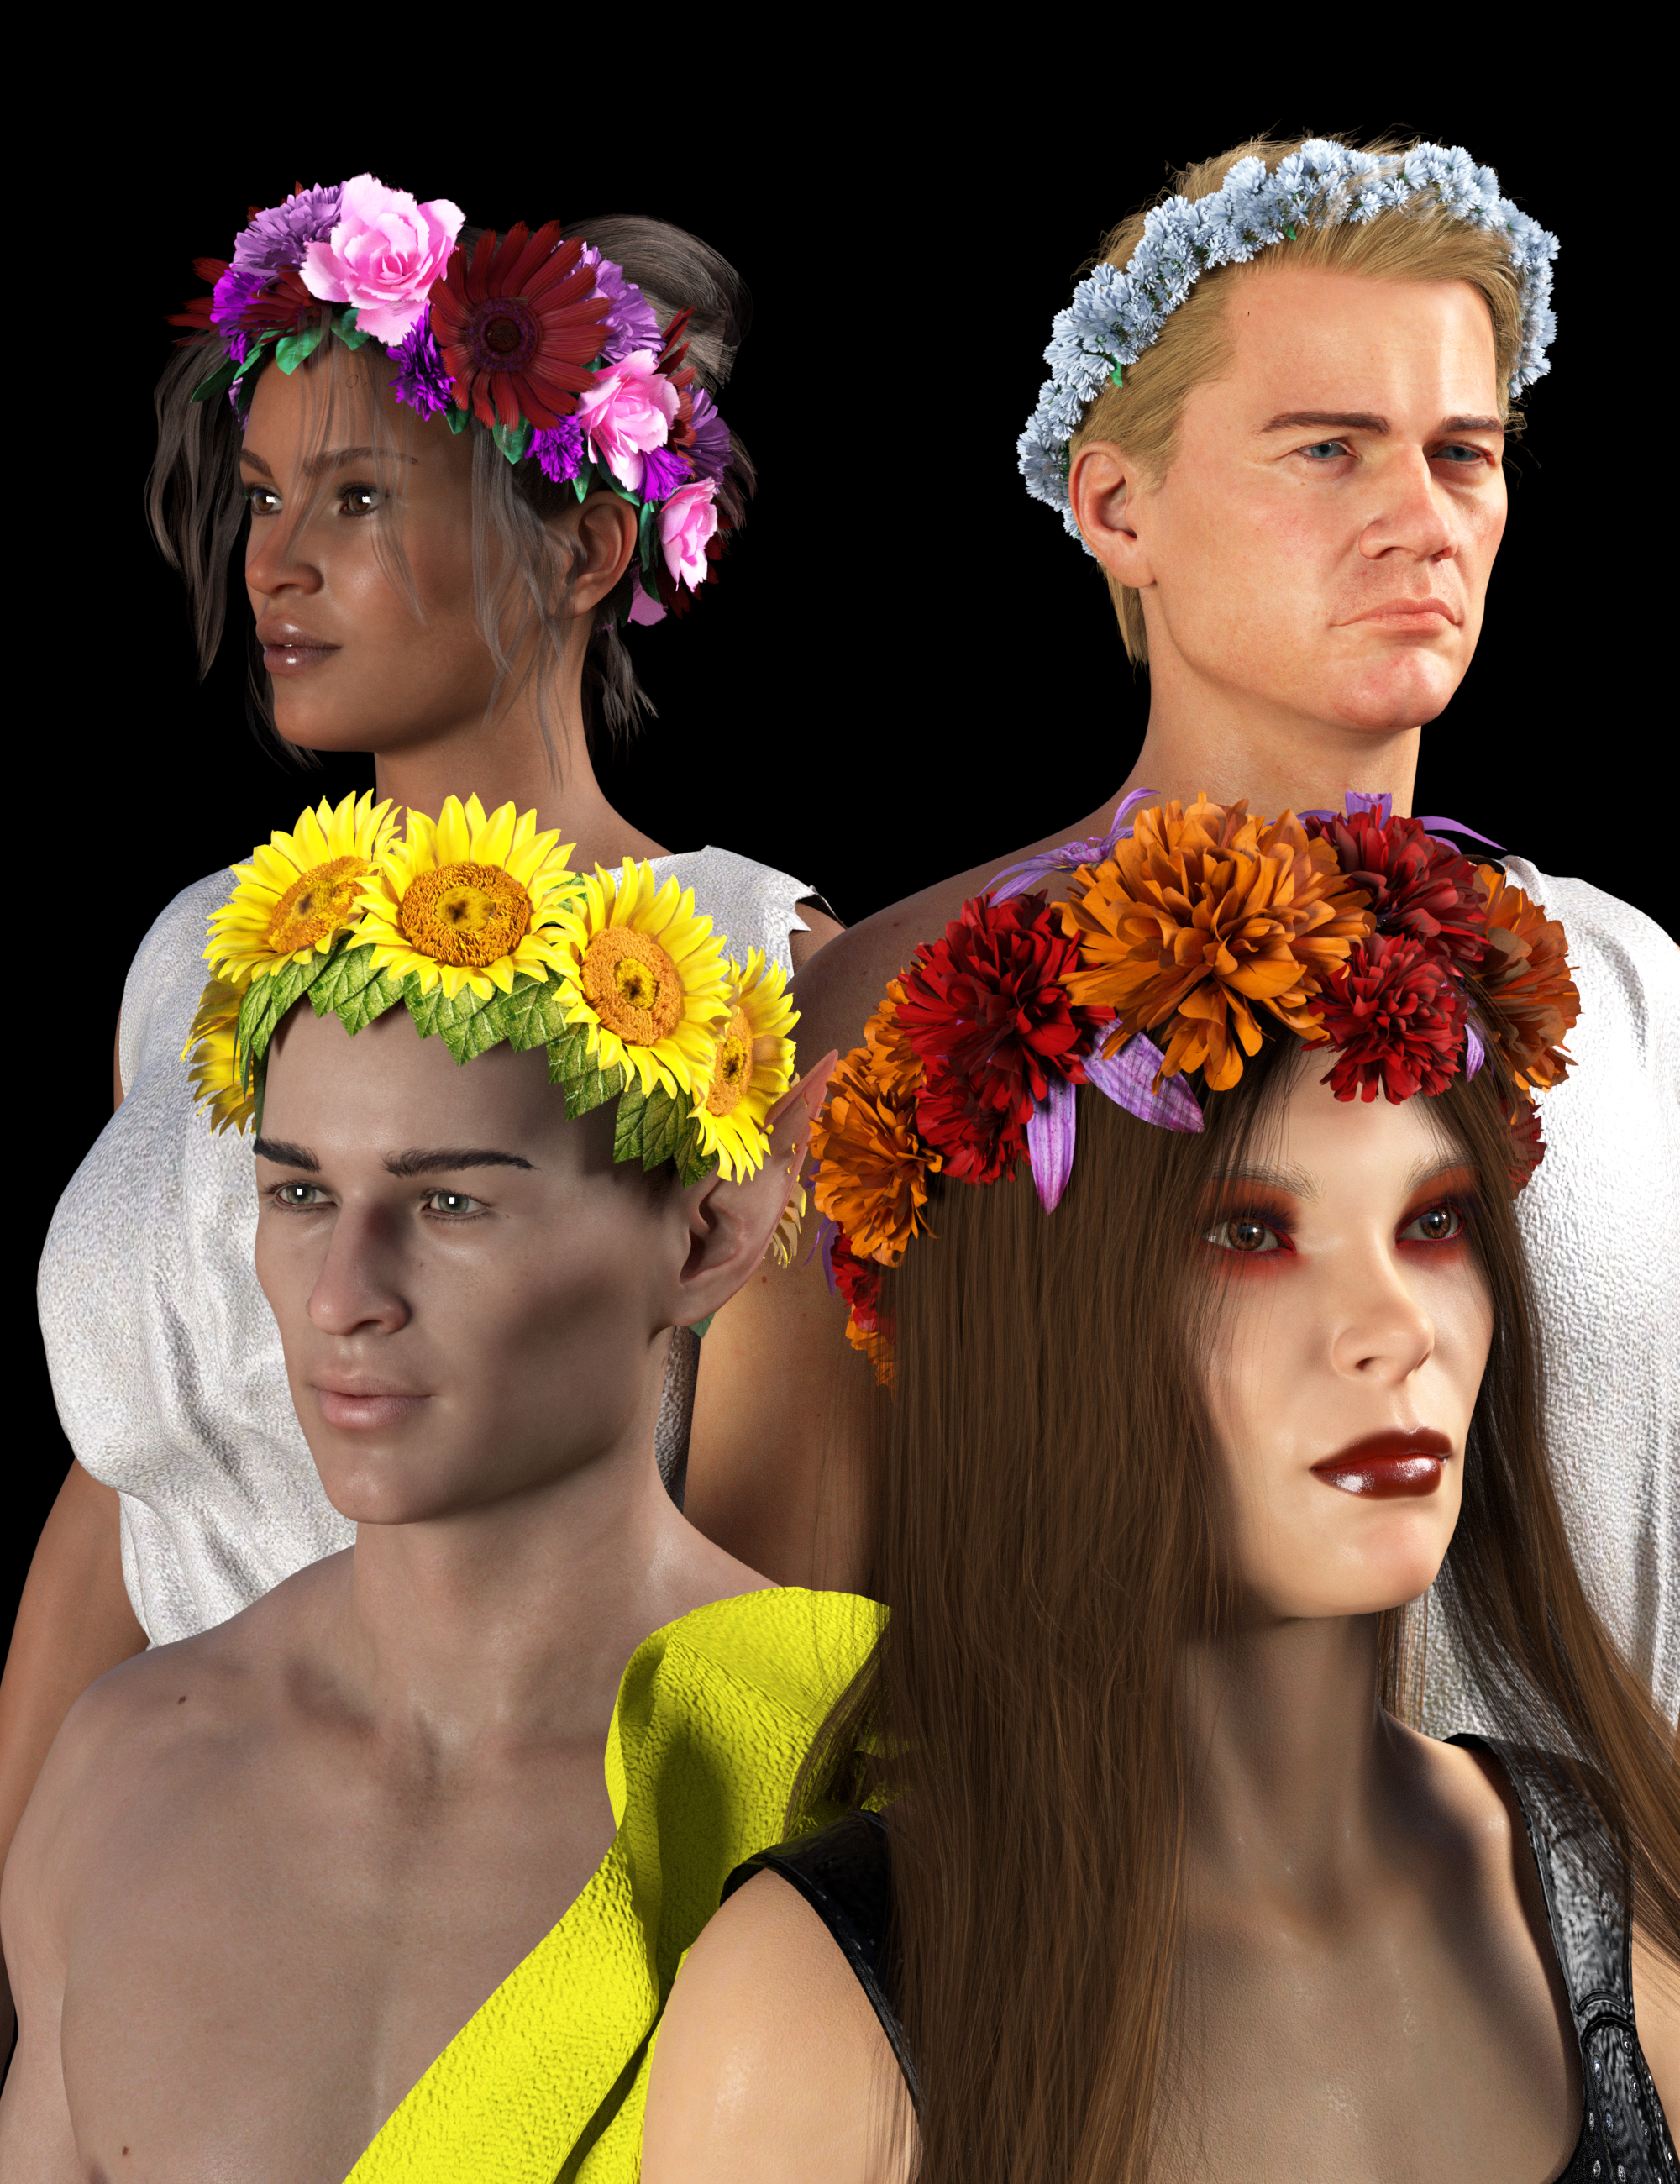 SY Flower Crowns for Genesis 8 and 8.1 by: Sickleyield, 3D Models by Daz 3D